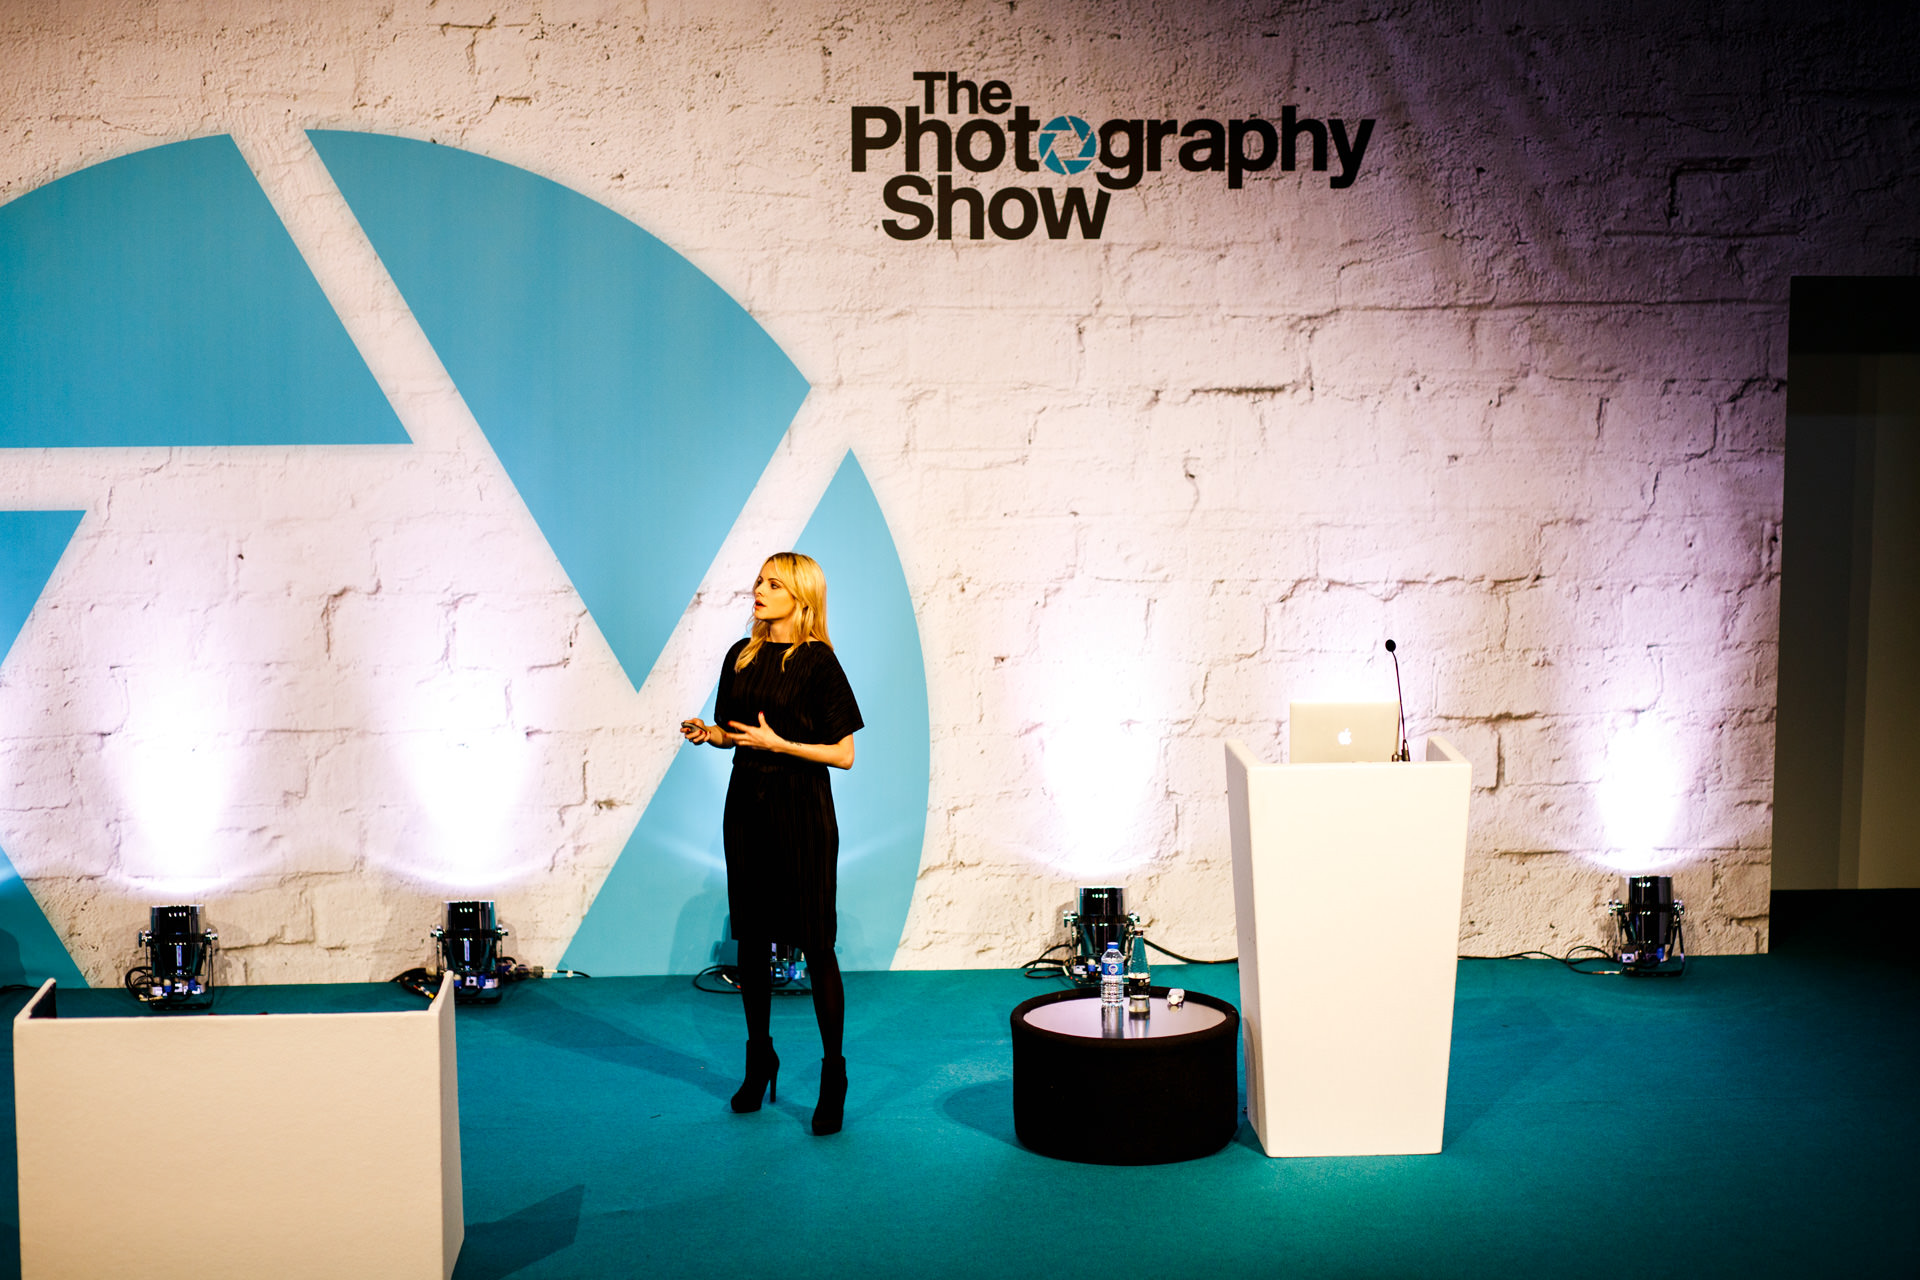 I really enjoyed the Super Stage talks last year, so I made sure to go to another this year.  Lara Jade (a worldwide fashion photographer from the UK)gave her talk '10 Year Evolution', described her journey from her late-teens to now. Her work, drive and approach to reach where she is now is inspiring...